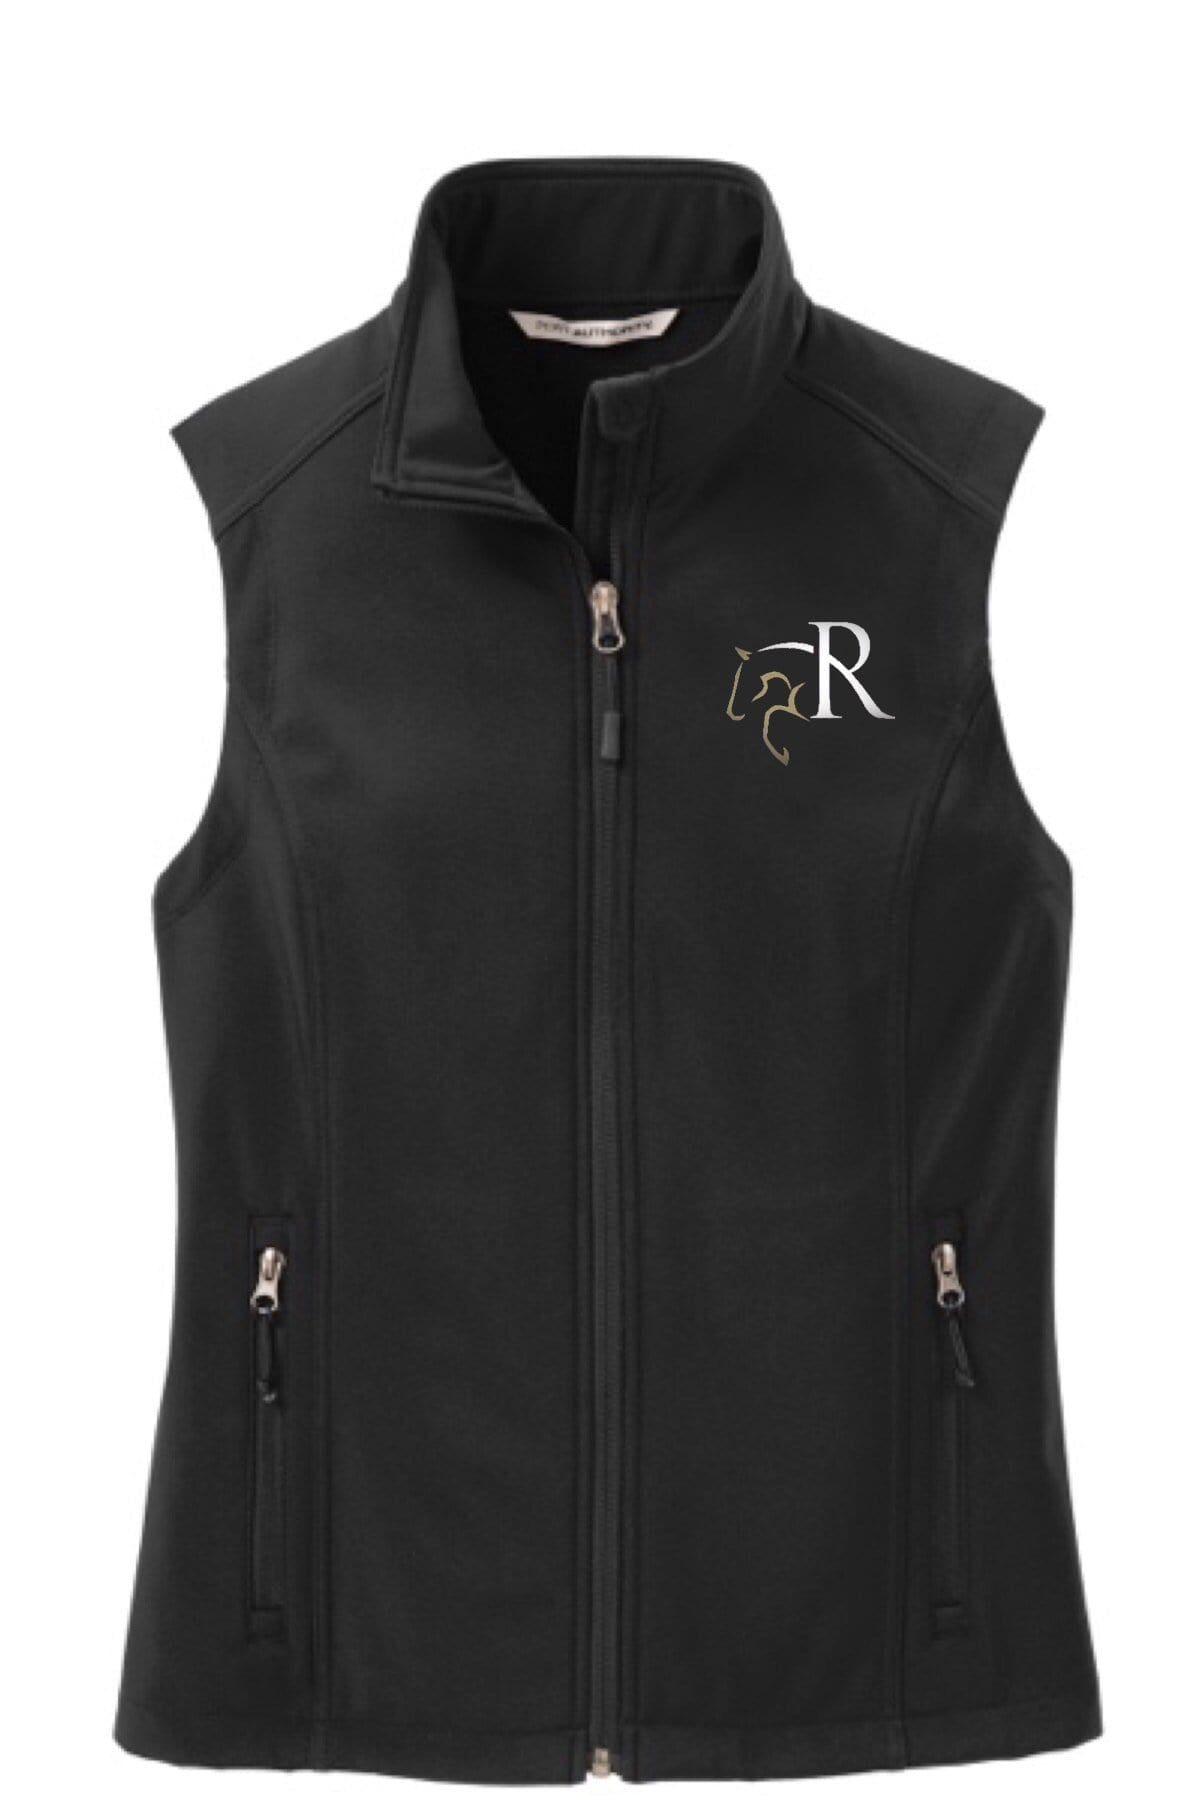 Equestrian Team Apparel Custom Team Jackets Ladies / XS Rivers Edge Farm Softshell Vest equestrian team apparel online tack store mobile tack store custom farm apparel custom show stable clothing equestrian lifestyle horse show clothing riding clothes horses equestrian tack store